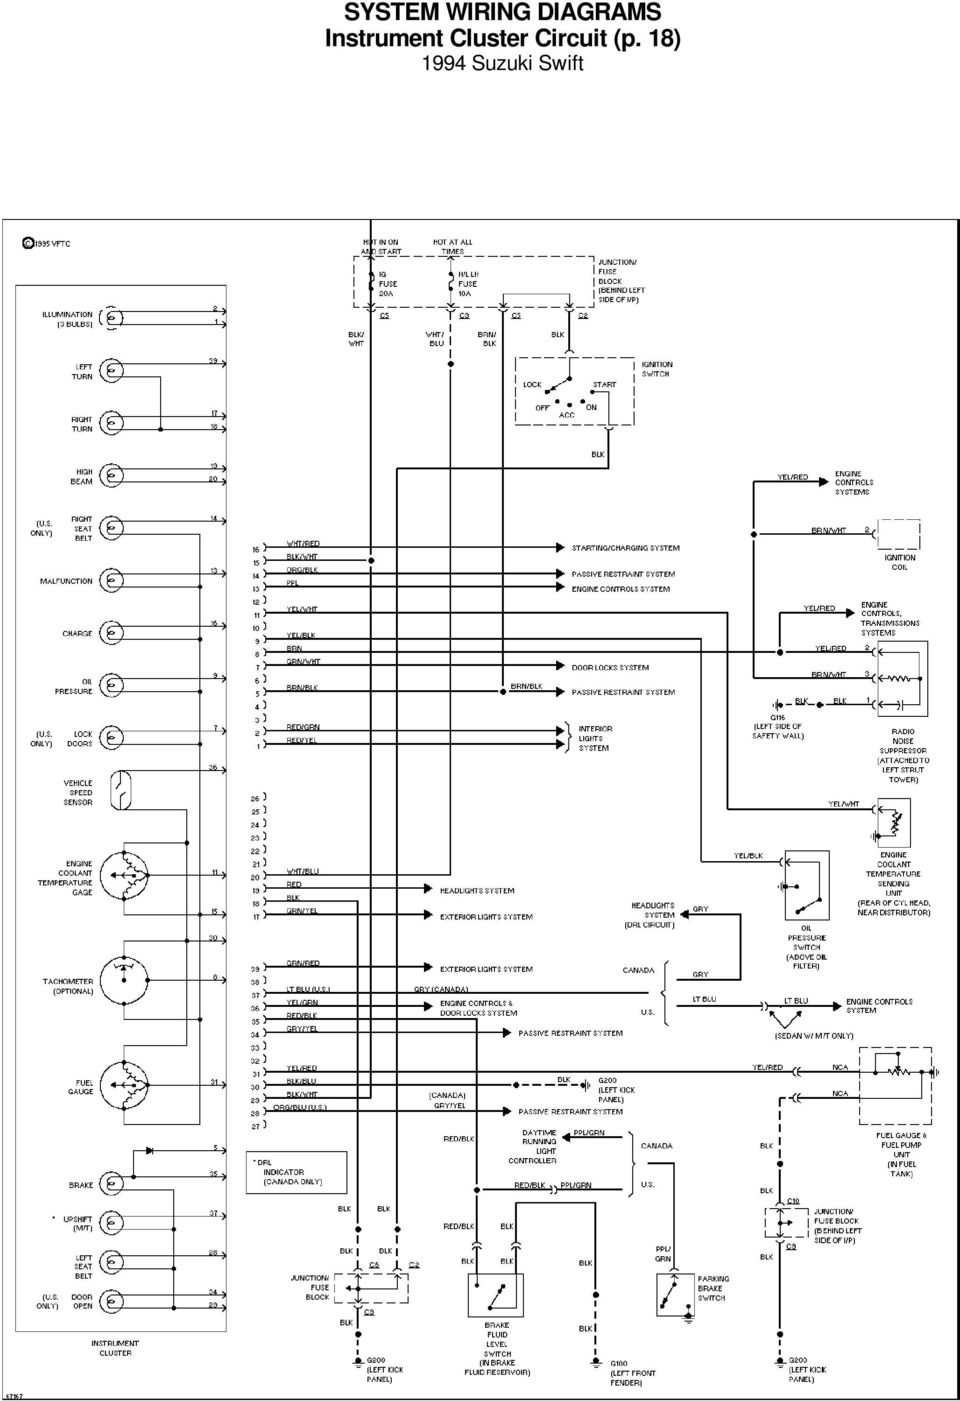 System Wiring Diagrams A C Circuit 1994 Suzuki Swift For X Copyright Dome Light Schematic Volvo 19 Interior P